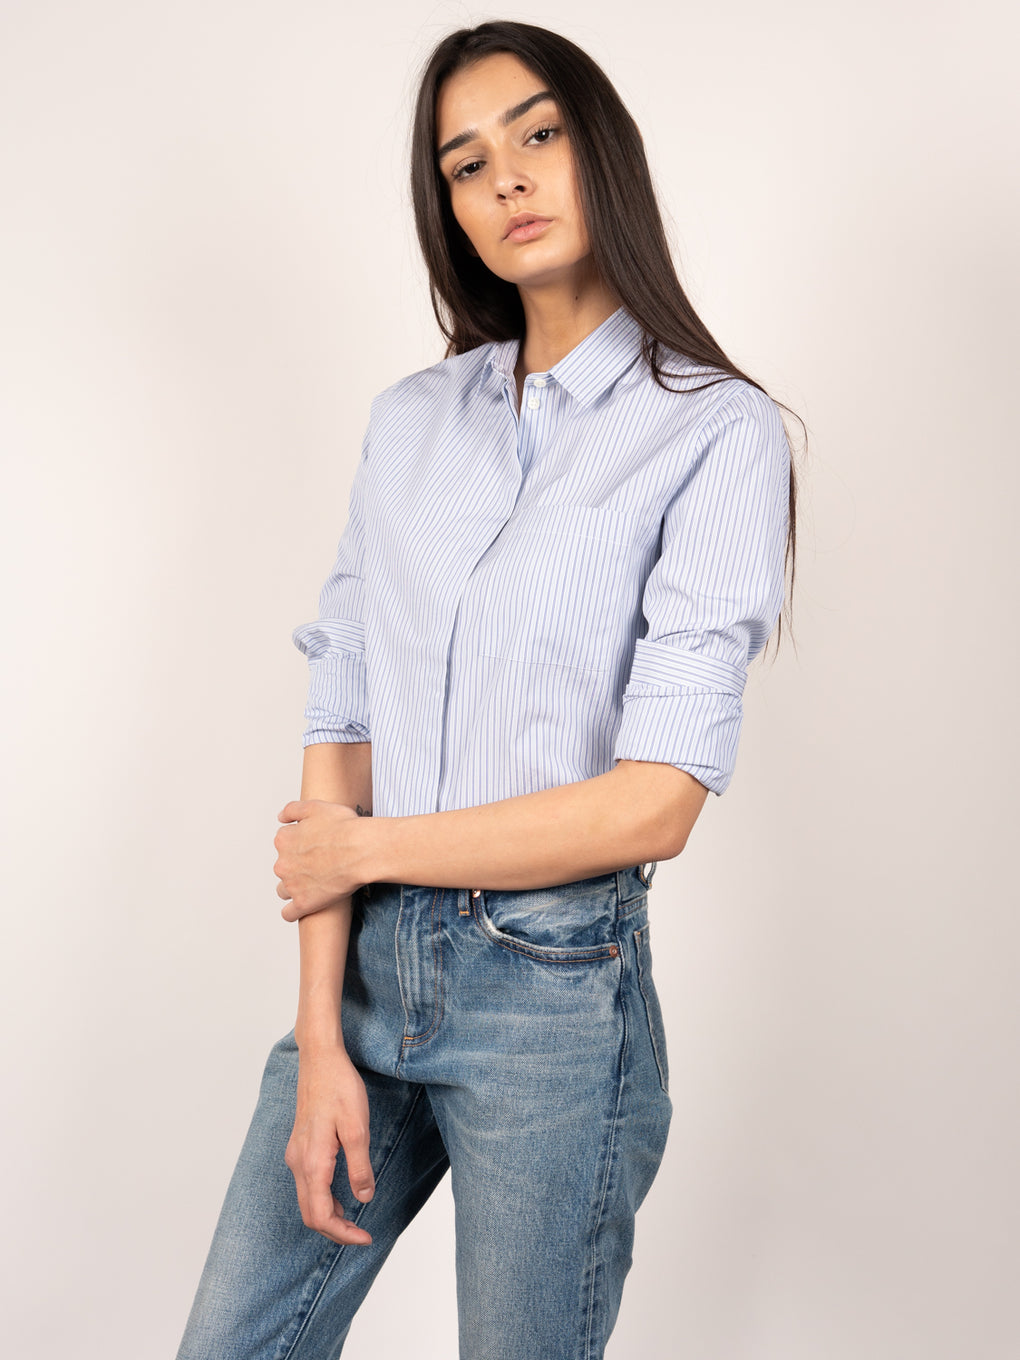 menswear inspired womens shirt - Agny poplin button up - Striped pale blue - Norse Projects Womens - Understudy